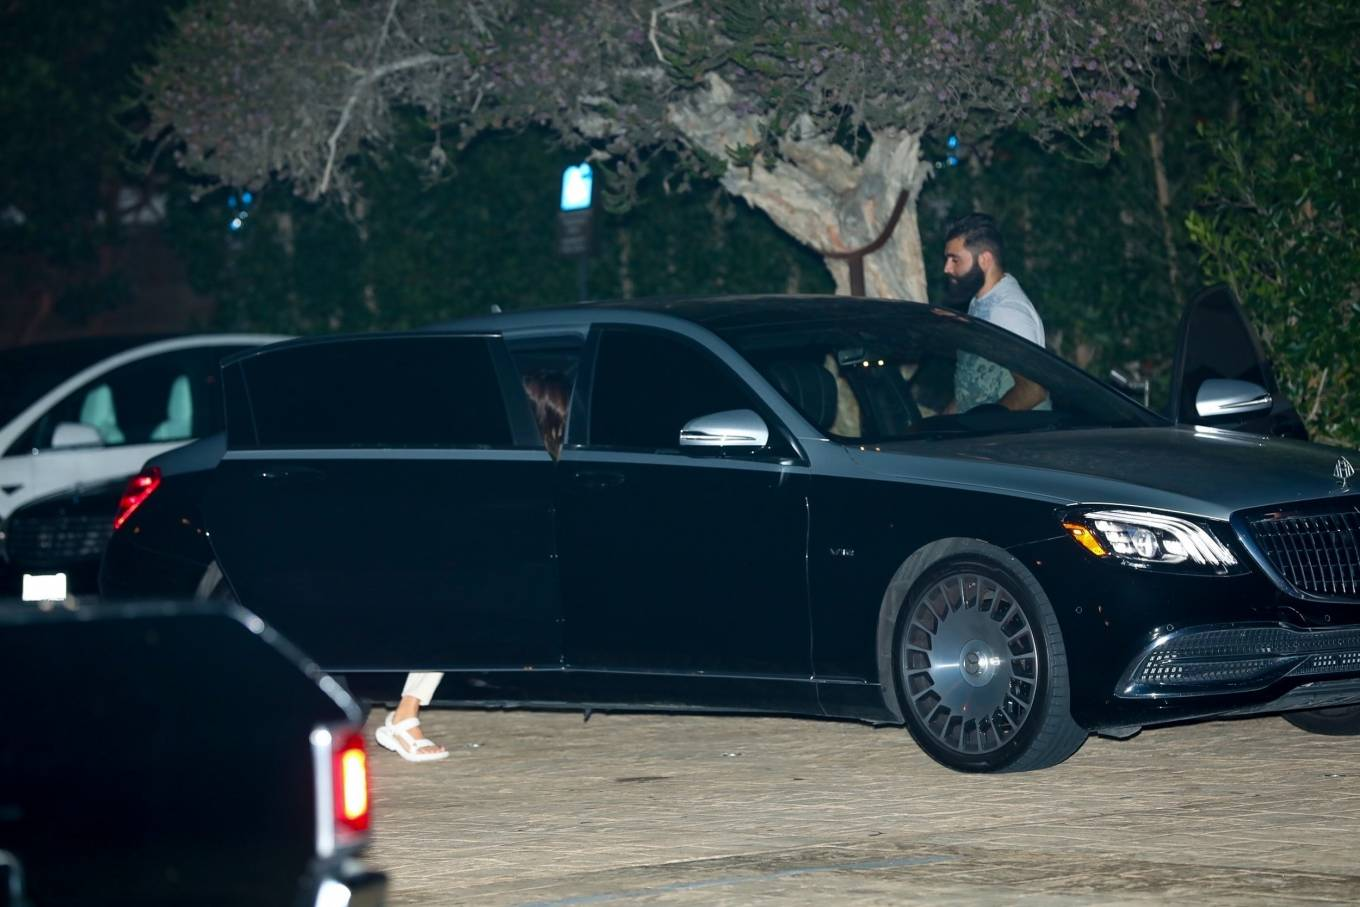 Kendall Jenner 2020 : Kendall Jenner – Out for dinner in black limo at SoHo House in Malibu-11